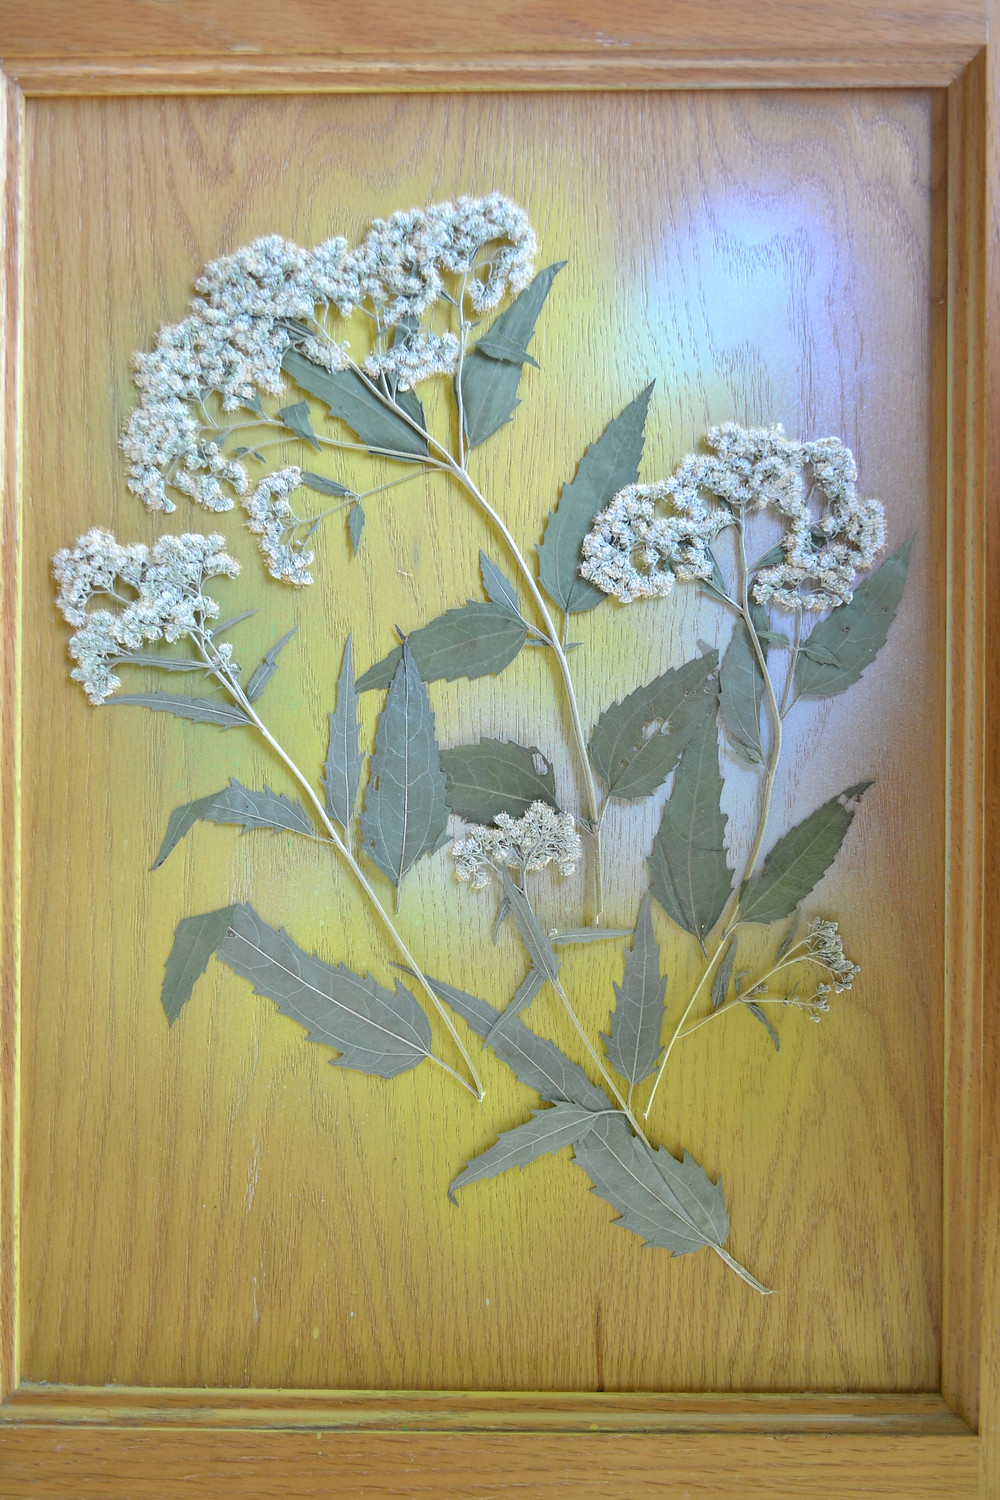 A door of a wooden cabinet with dried pressed plant. Pressed Flower Craft.